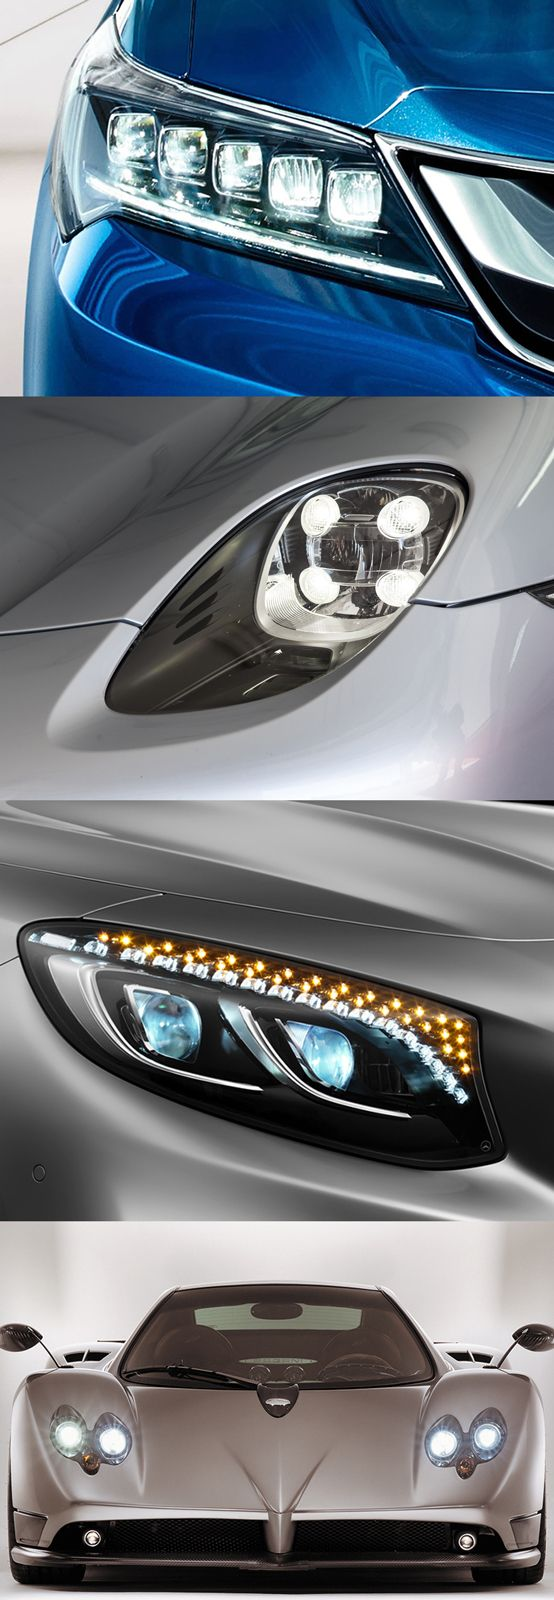 The 10 #Most #Identifiable #Car #Headlights on the #Road